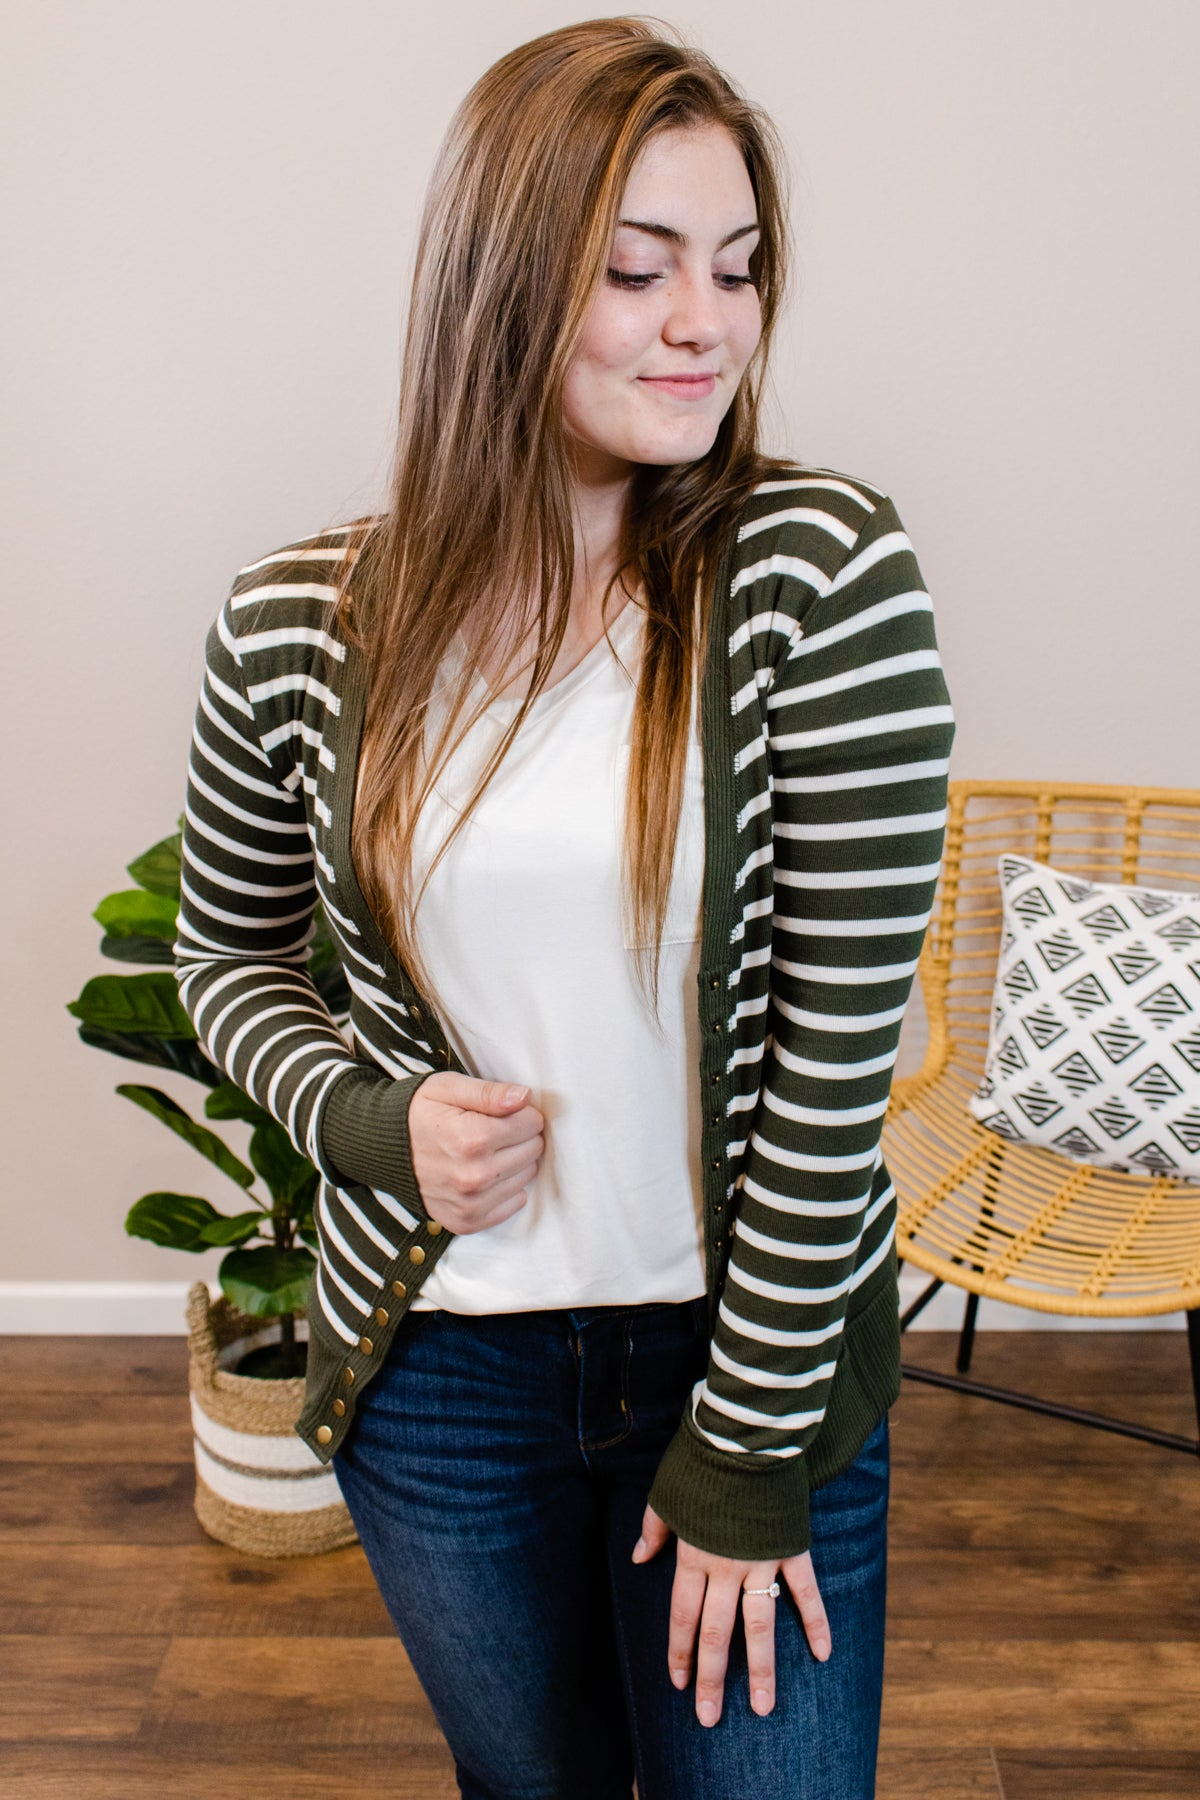 Stacey Striped Dark Olive Cardigan - Onyx & Oak Boutique